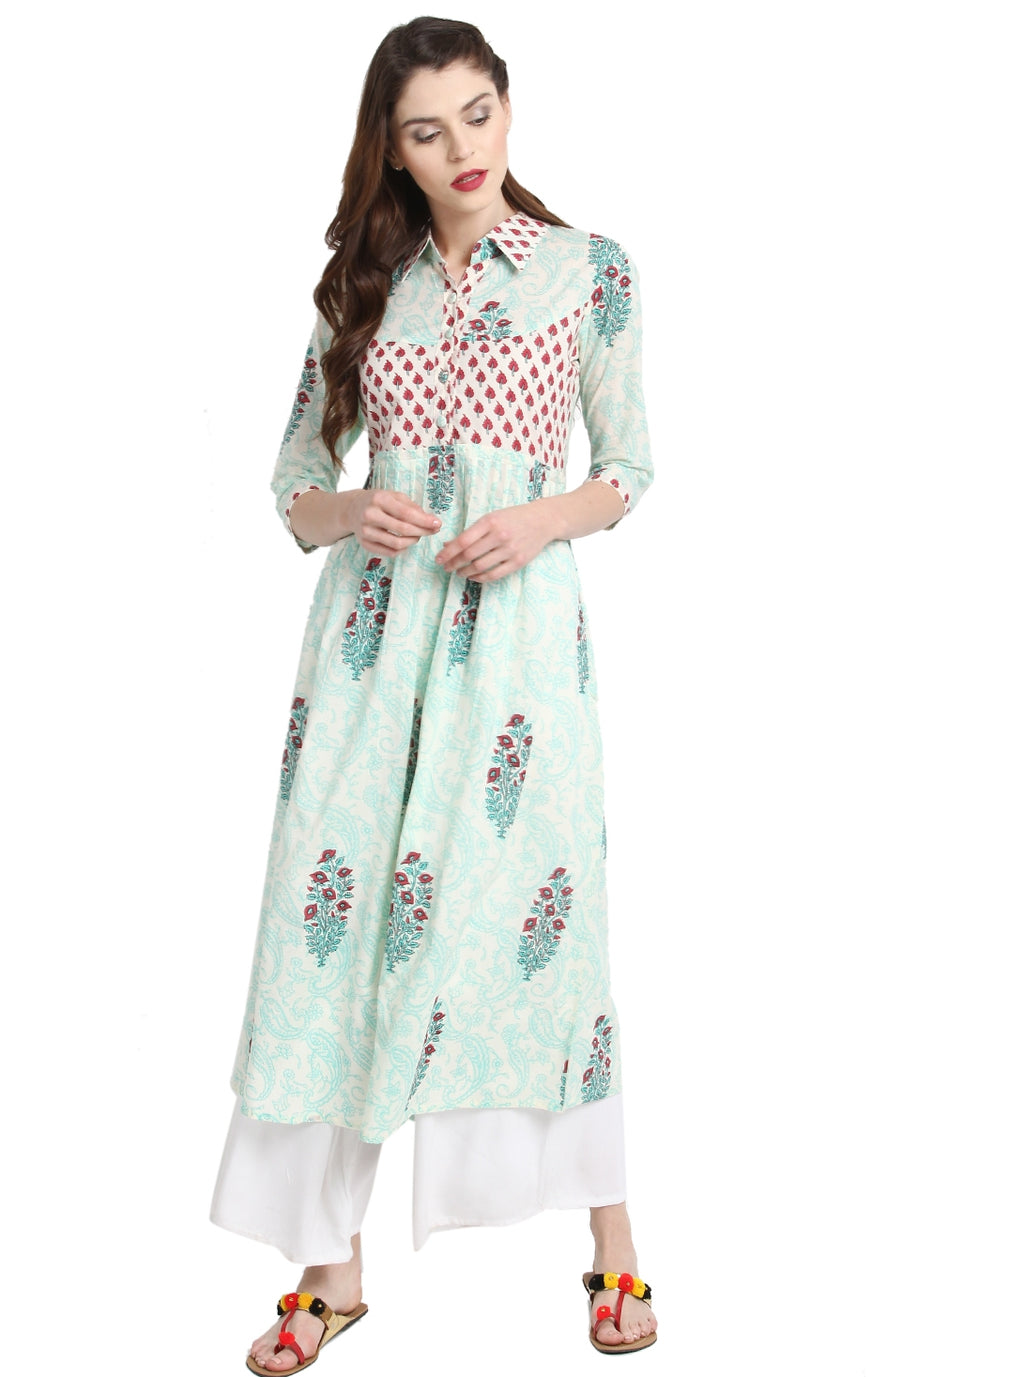 Cream & Sea Green Color Cotton Readymade Party Wear Kurtis ( Sizes-36,38,40,42,44) Janasya Catlog SJ-10234